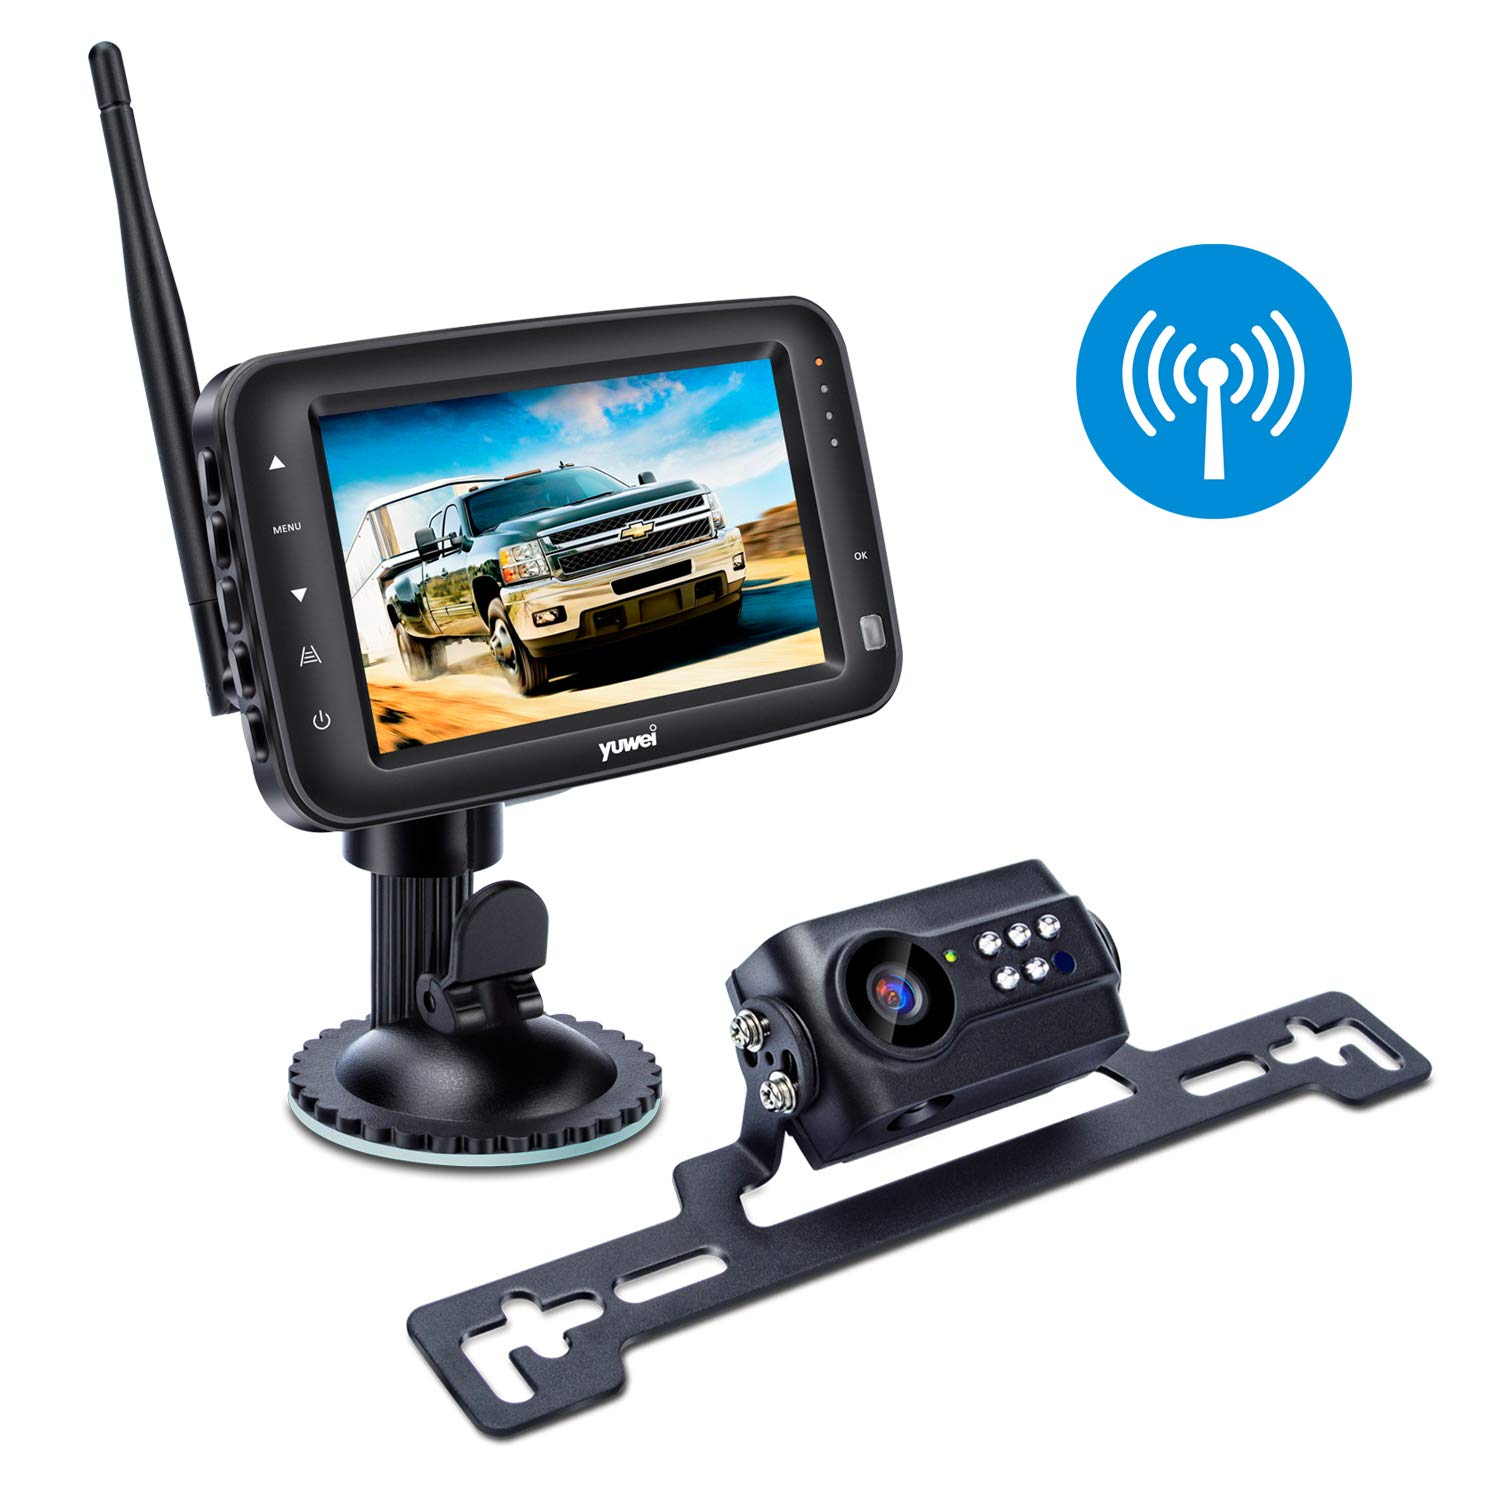 Yuwei Wireless Backup Camera